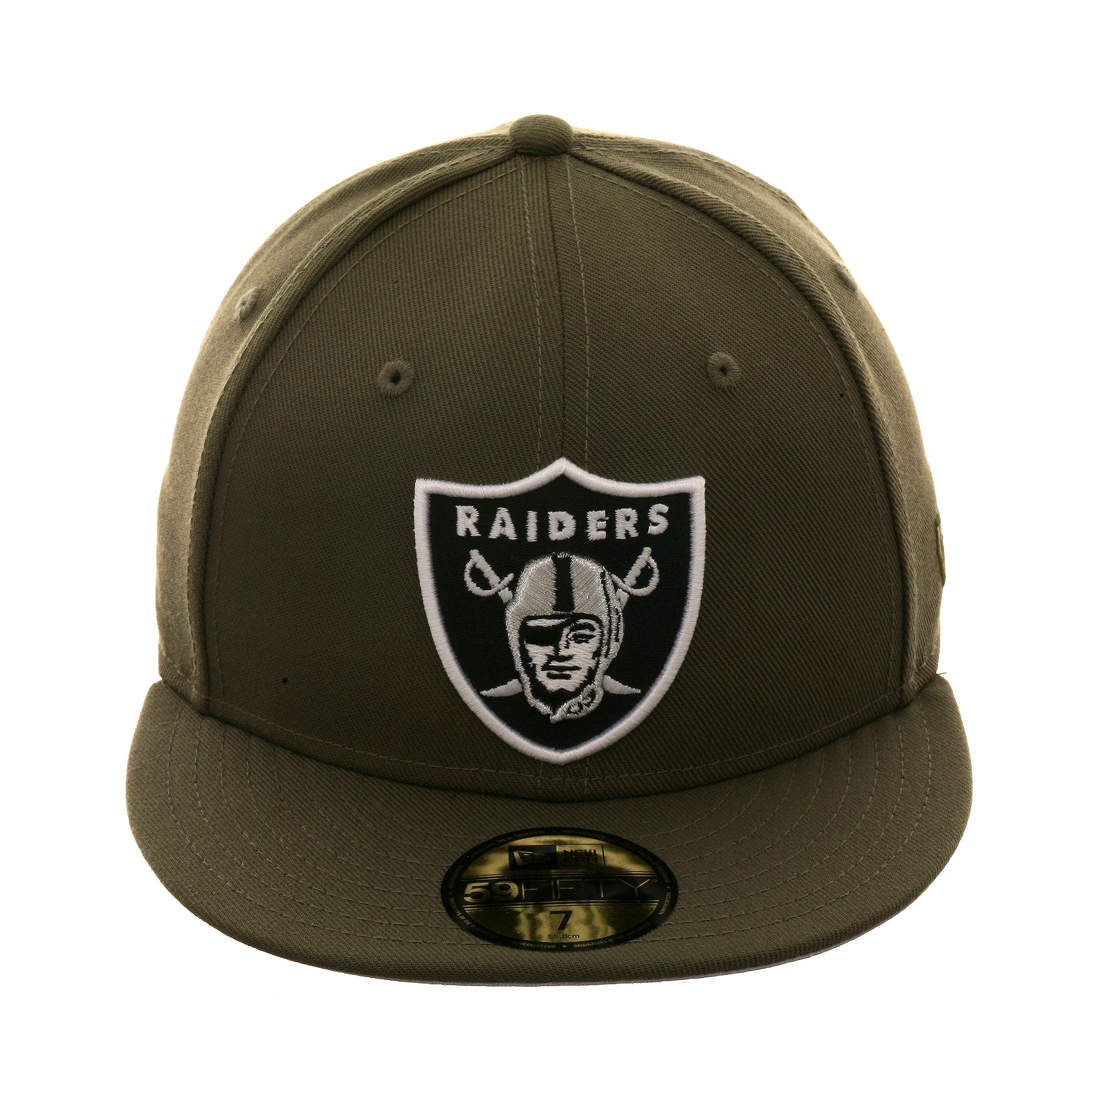 13451df6ac4 New Era 59Fifty Oakland Raiders Paisley Undervisor Fitted Hat - Black